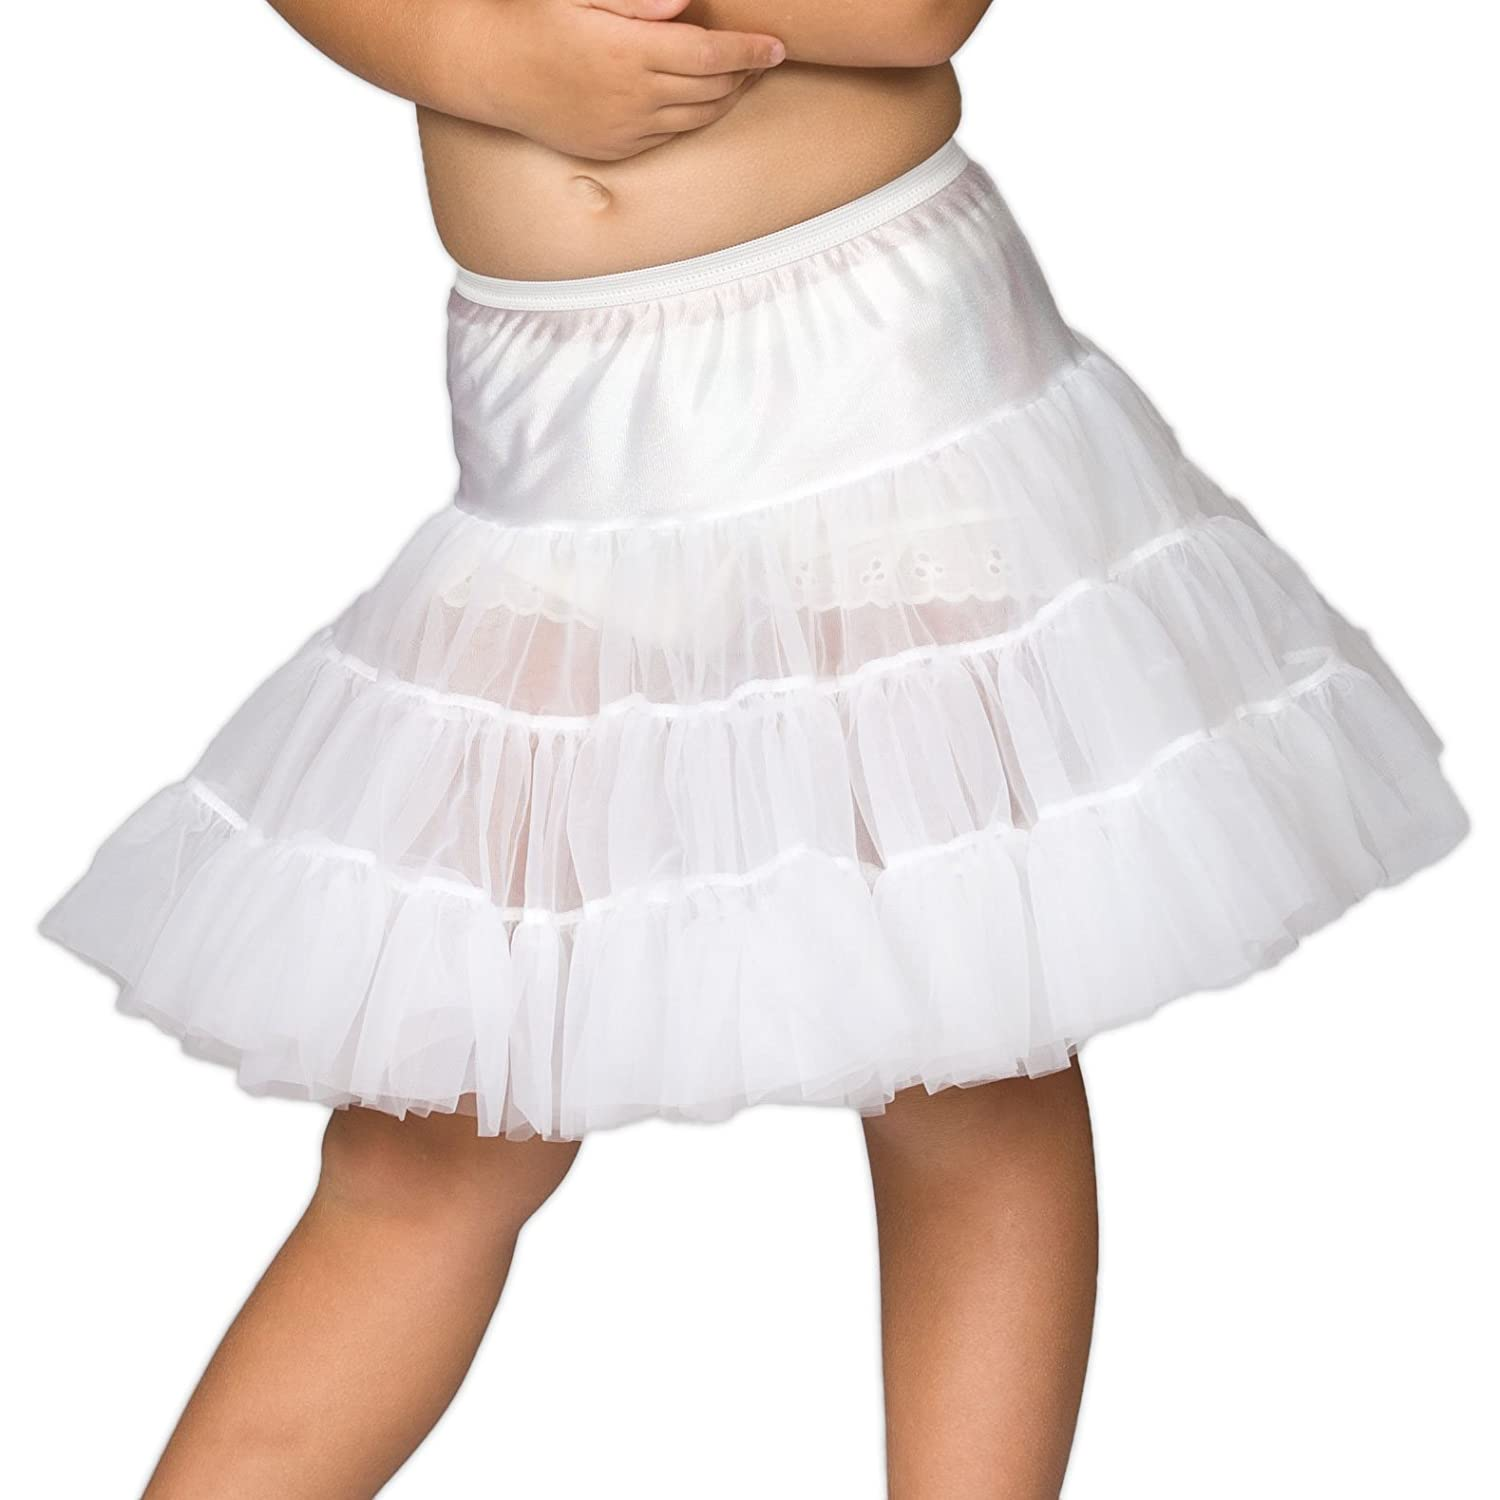 I.C. Collections Baby Girls White Bouffant Half Slip Petticoat, 18m New ICM 000502-ALL-A